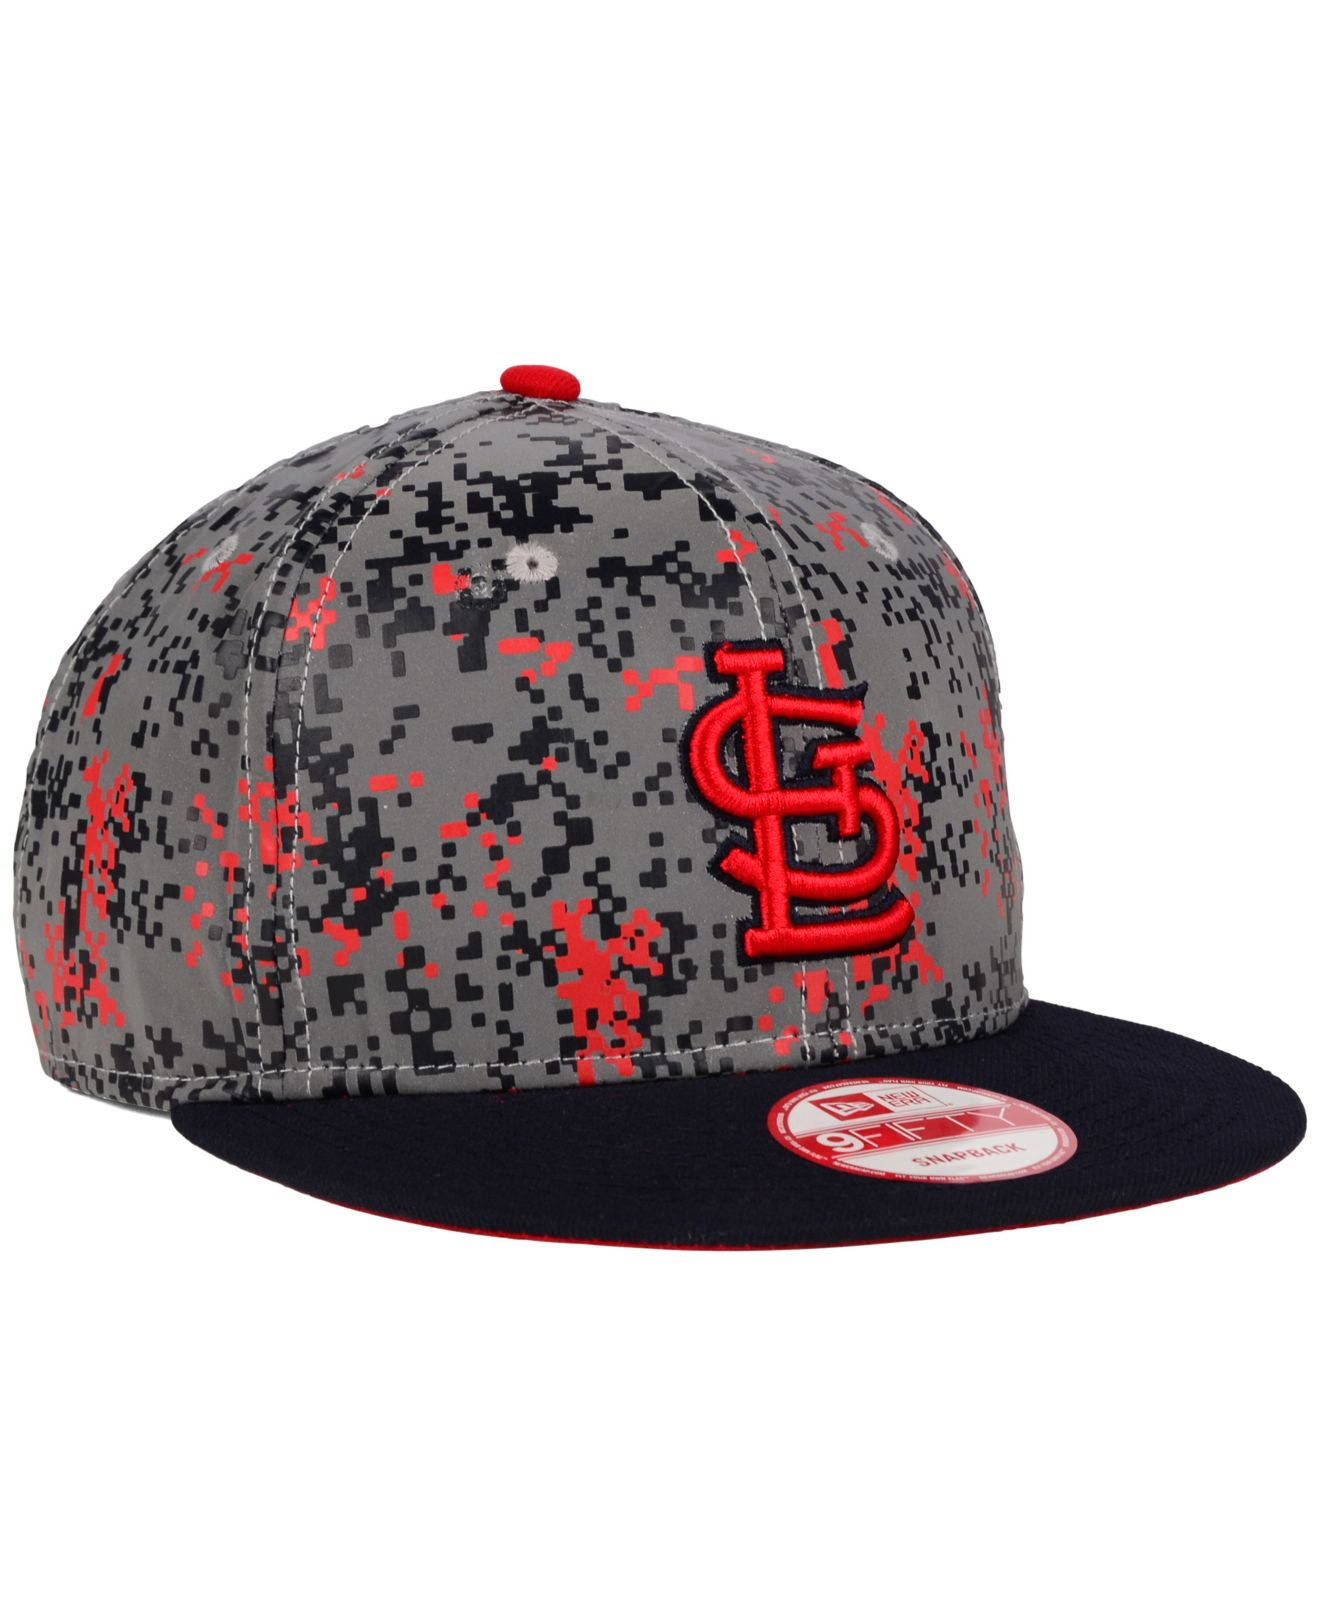 huge selection of 26f76 3d3c4 ... coupon lyst ktz st. louis cardinals dc reflective 9fifty snapback cap  in gray for men